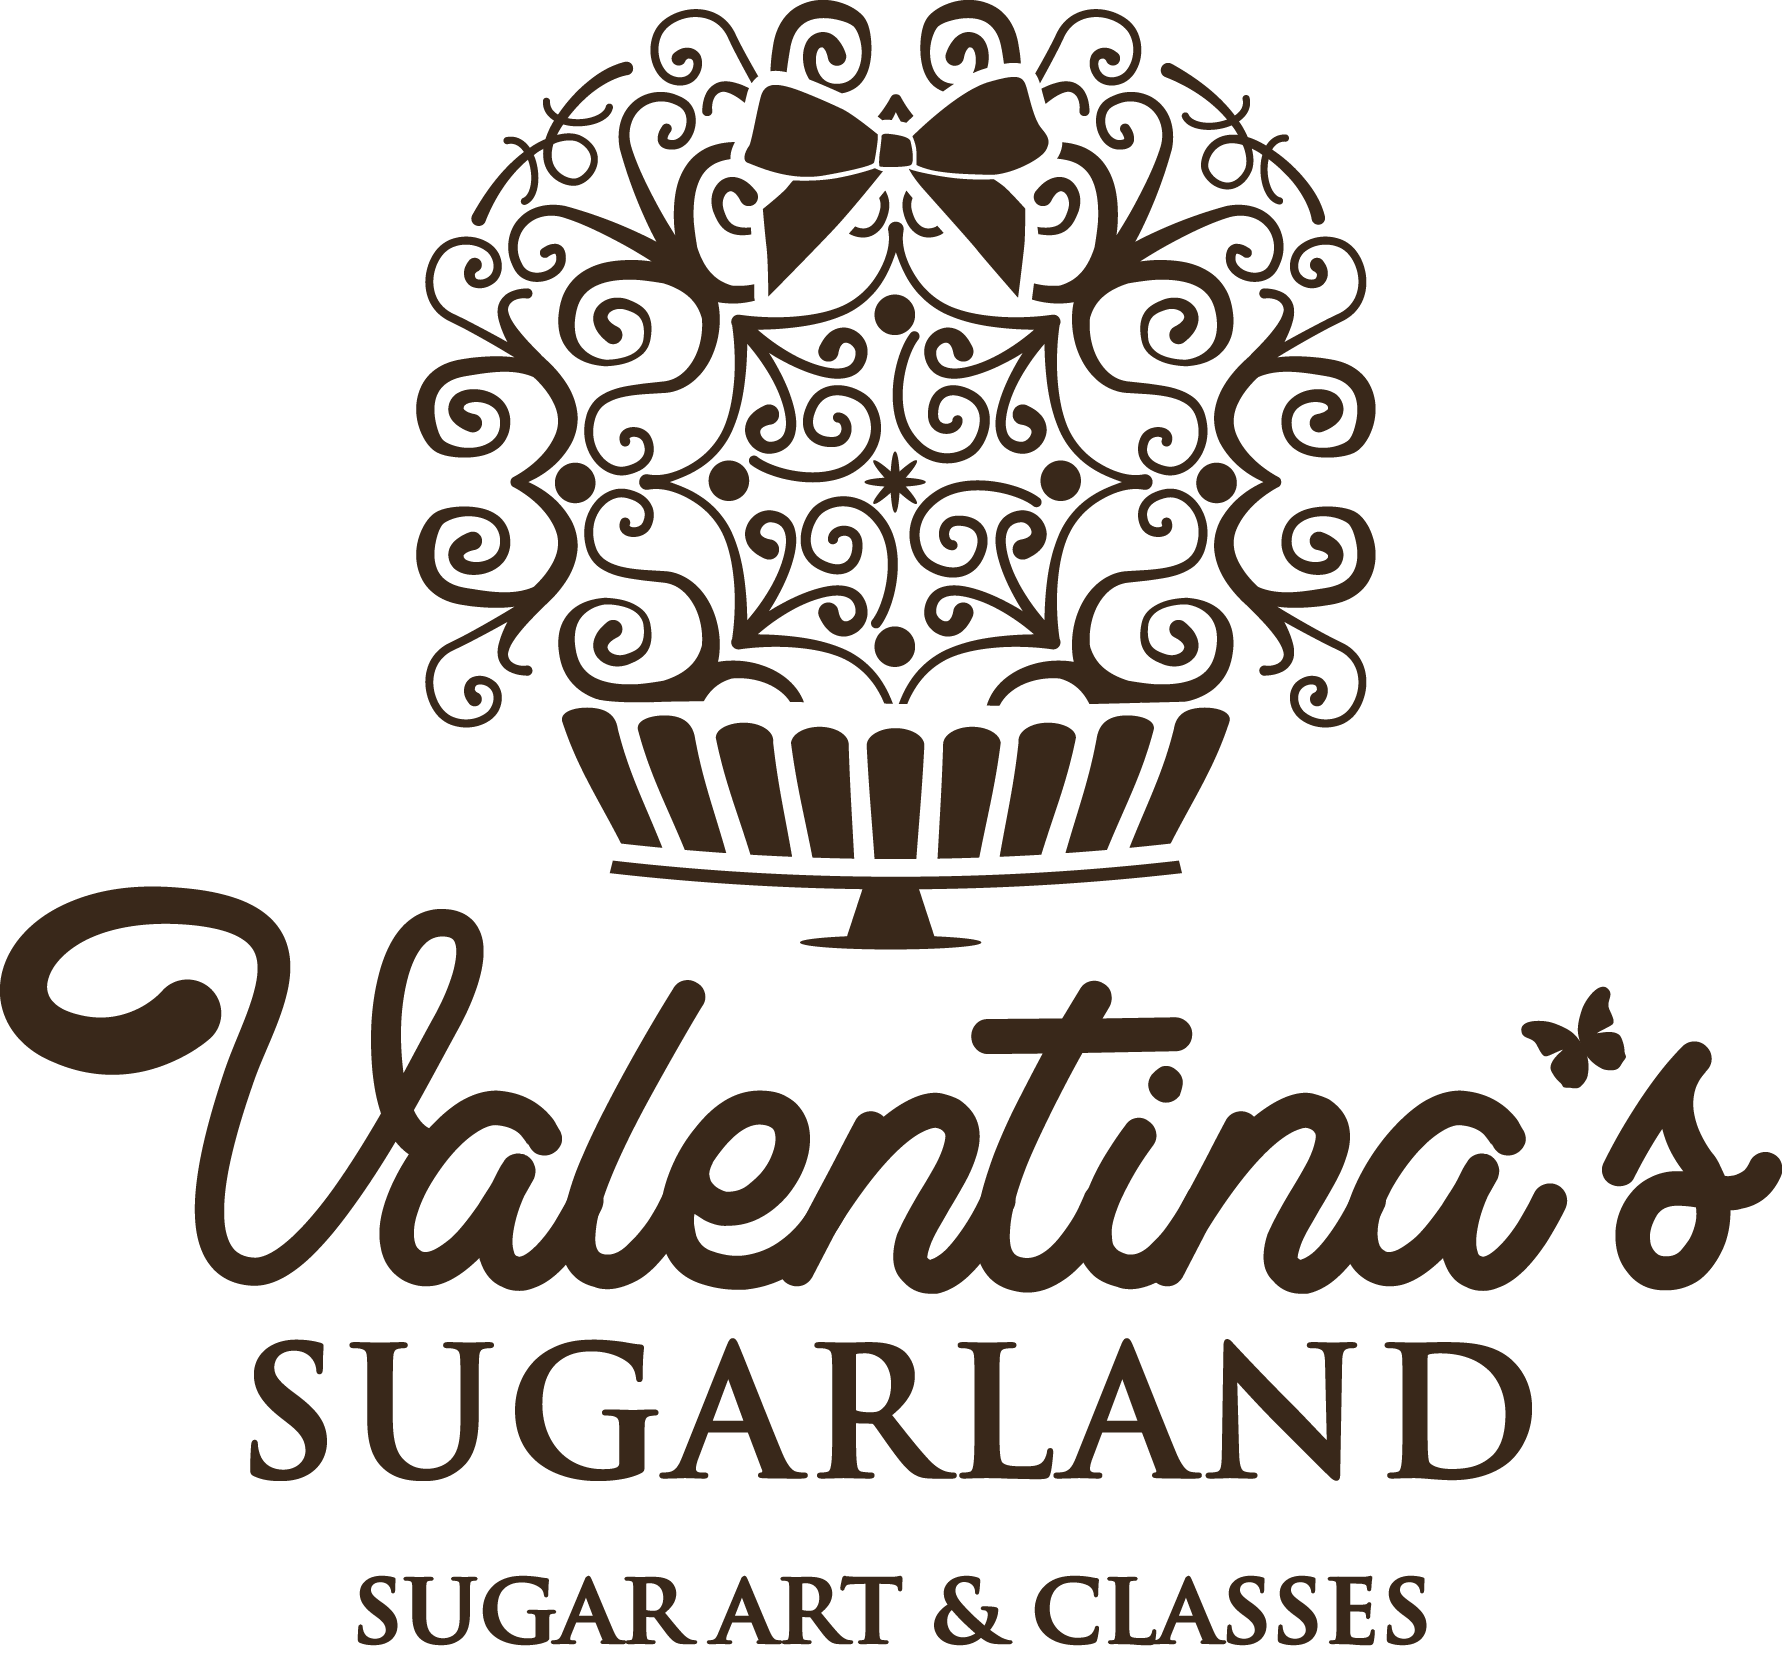 Valentina's Sugarland LTD